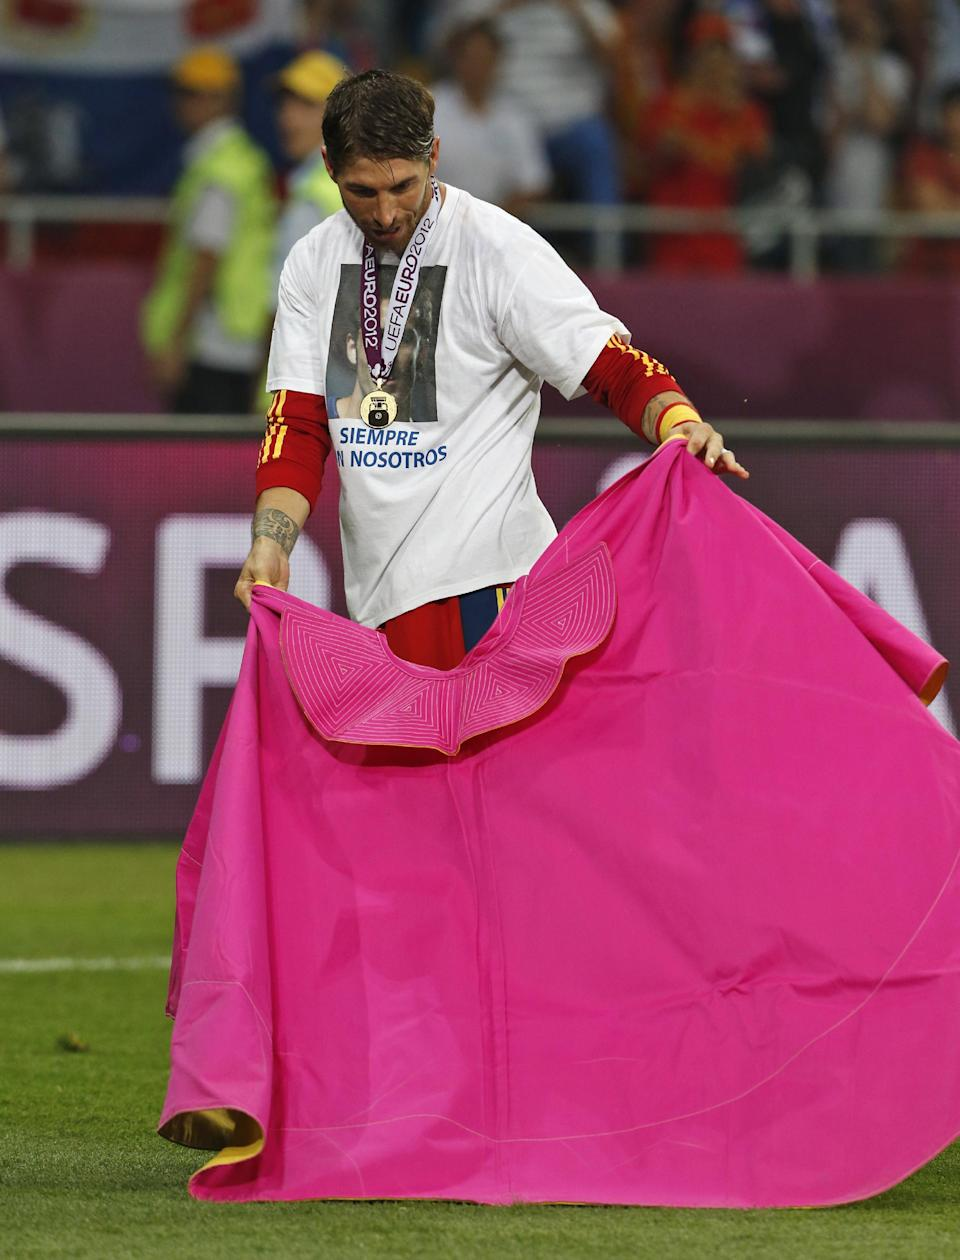 RESENDING WITH CORRECTED NAME- Spain's Sergio Ramos acts as a matador after the Euro 2012 soccer championship final  between Spain and Italy in Kiev, Ukraine, Monday, July 2, 2012. (AP Photo/Gregorio Borgia)